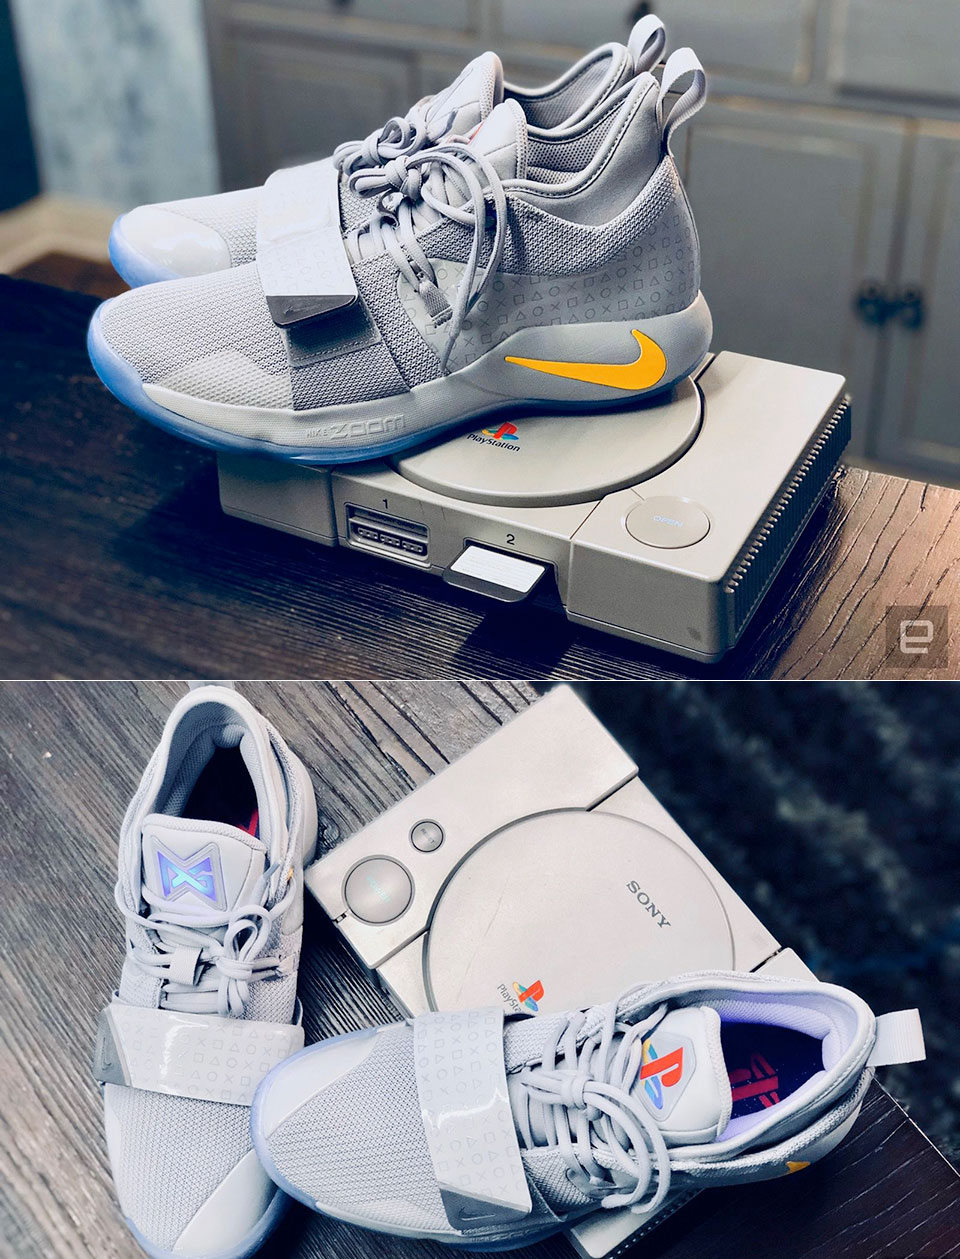 buy popular 31b64 68b15 Hands-On Pictures of Nike's New PG 2.5 x PlayStation ...